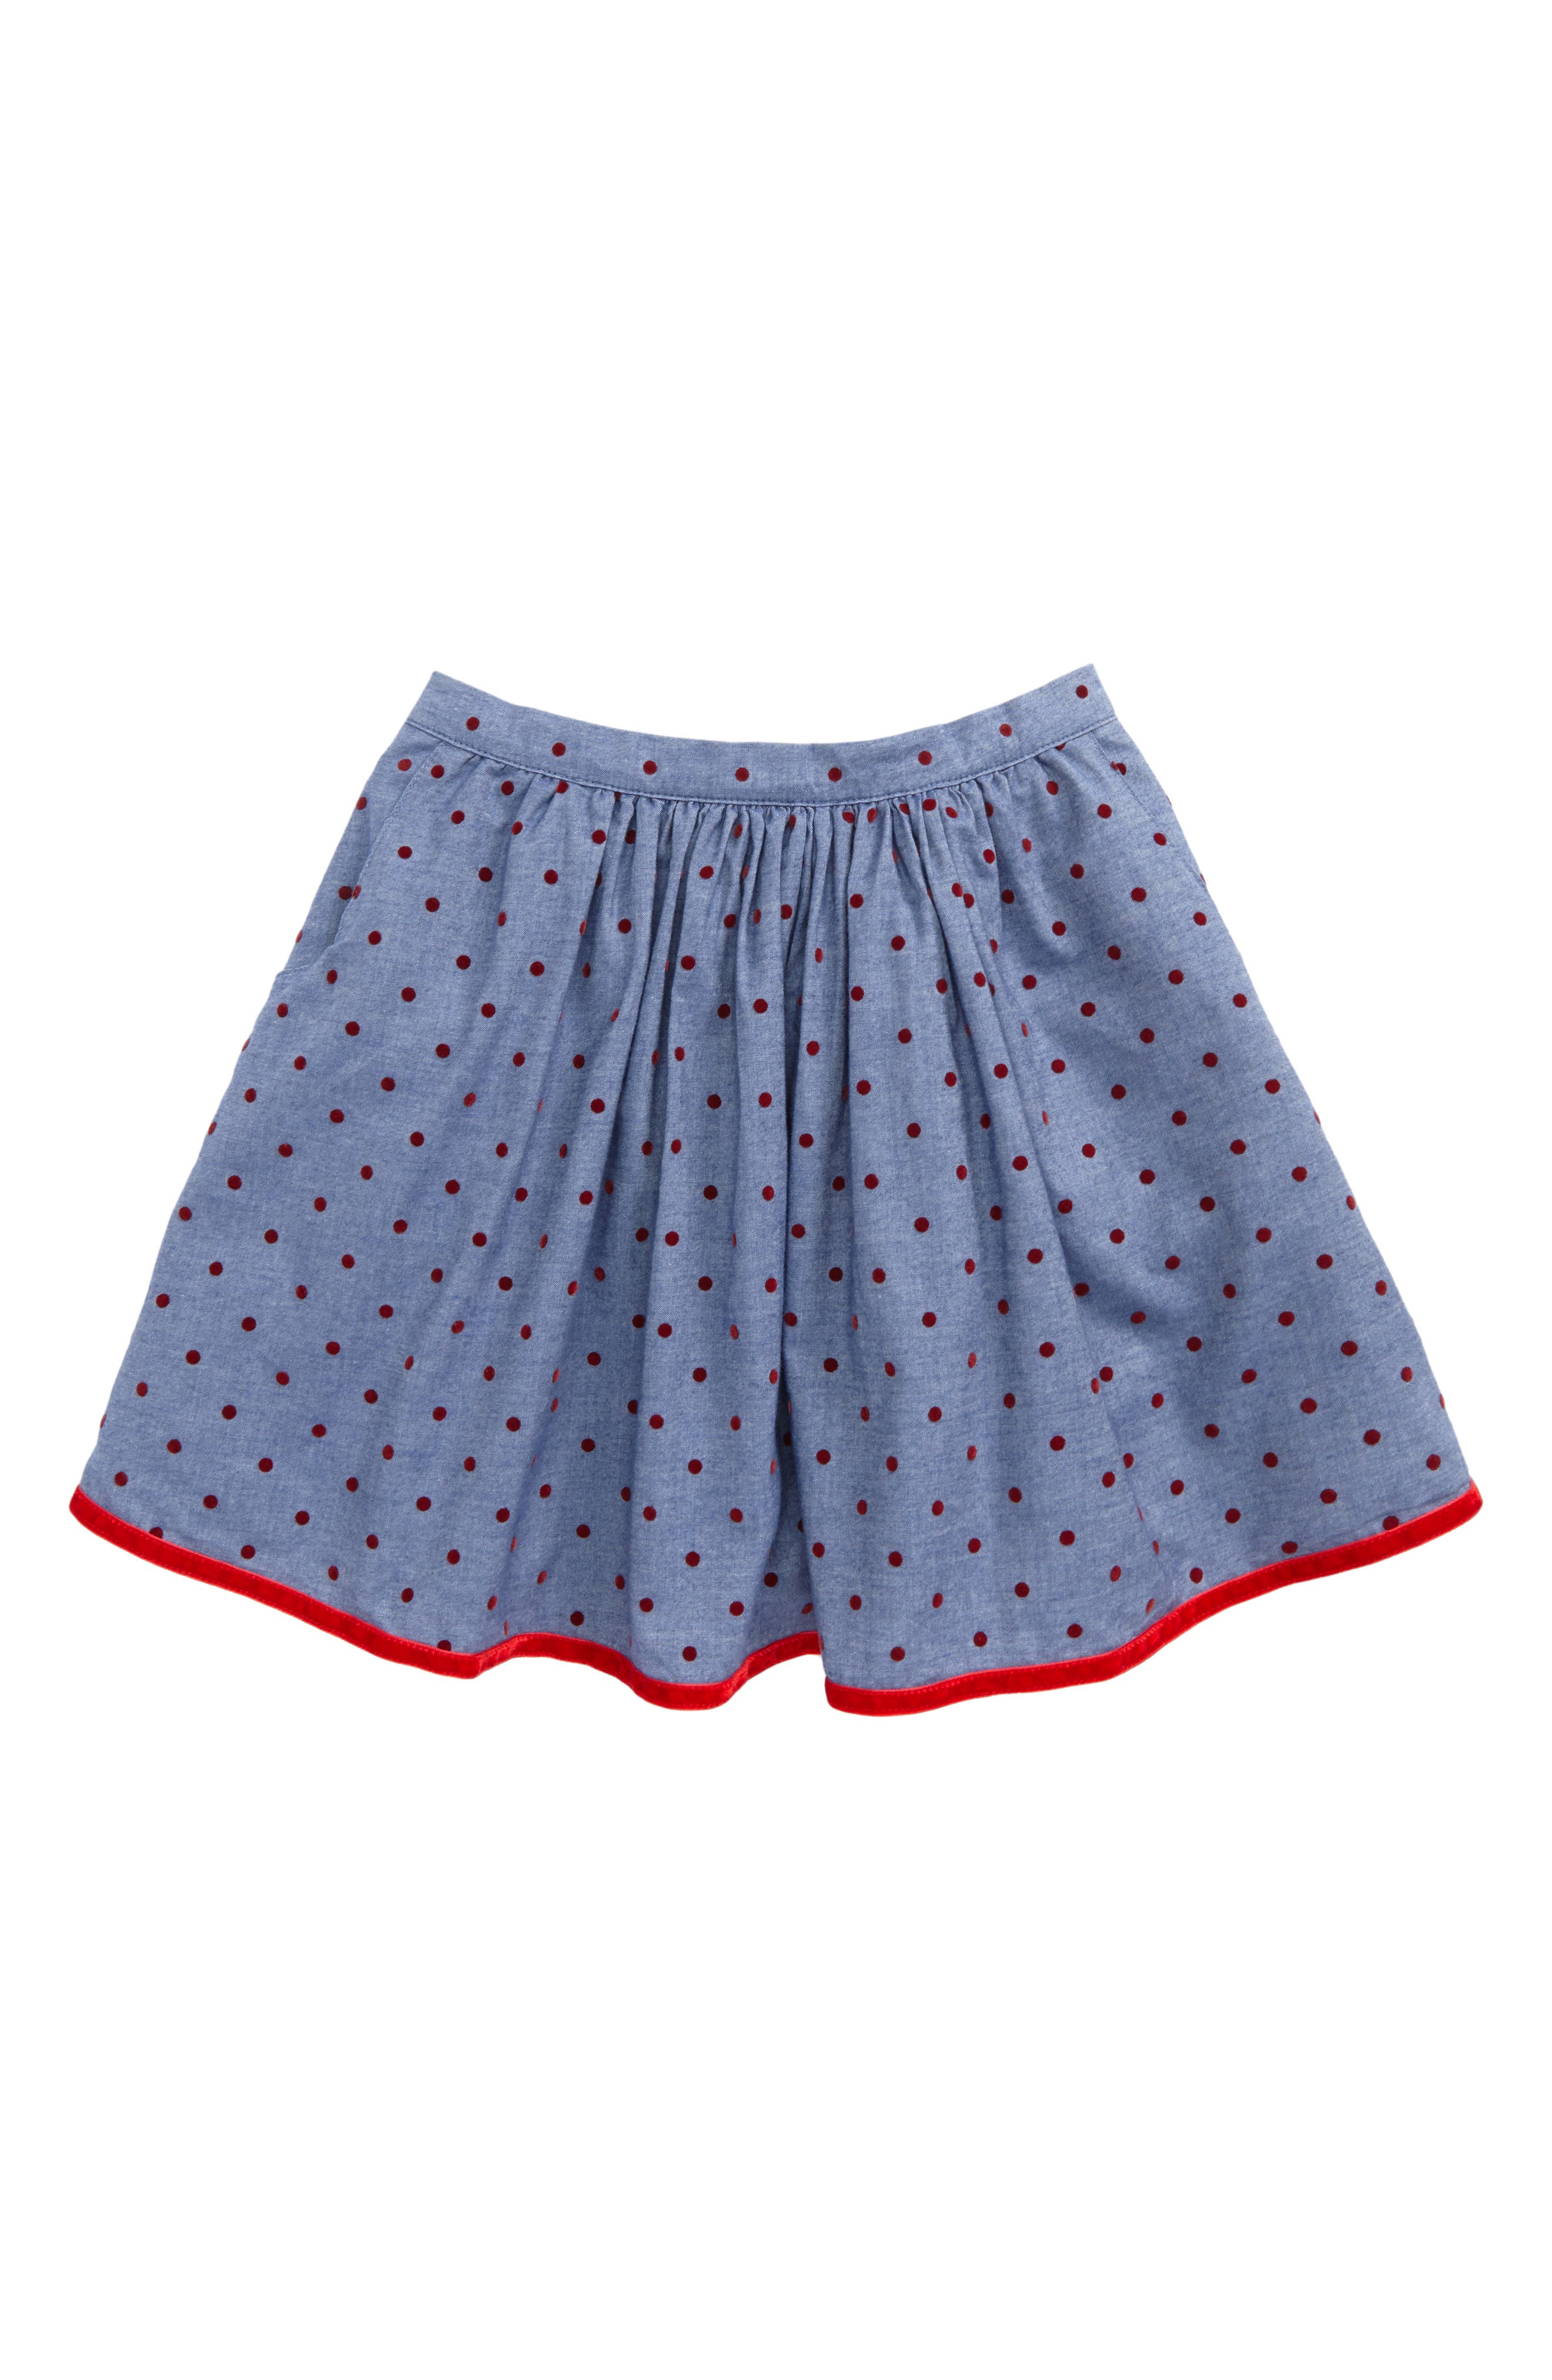 Pretty Twirly Skirt,                             Main thumbnail 1, color,                             424